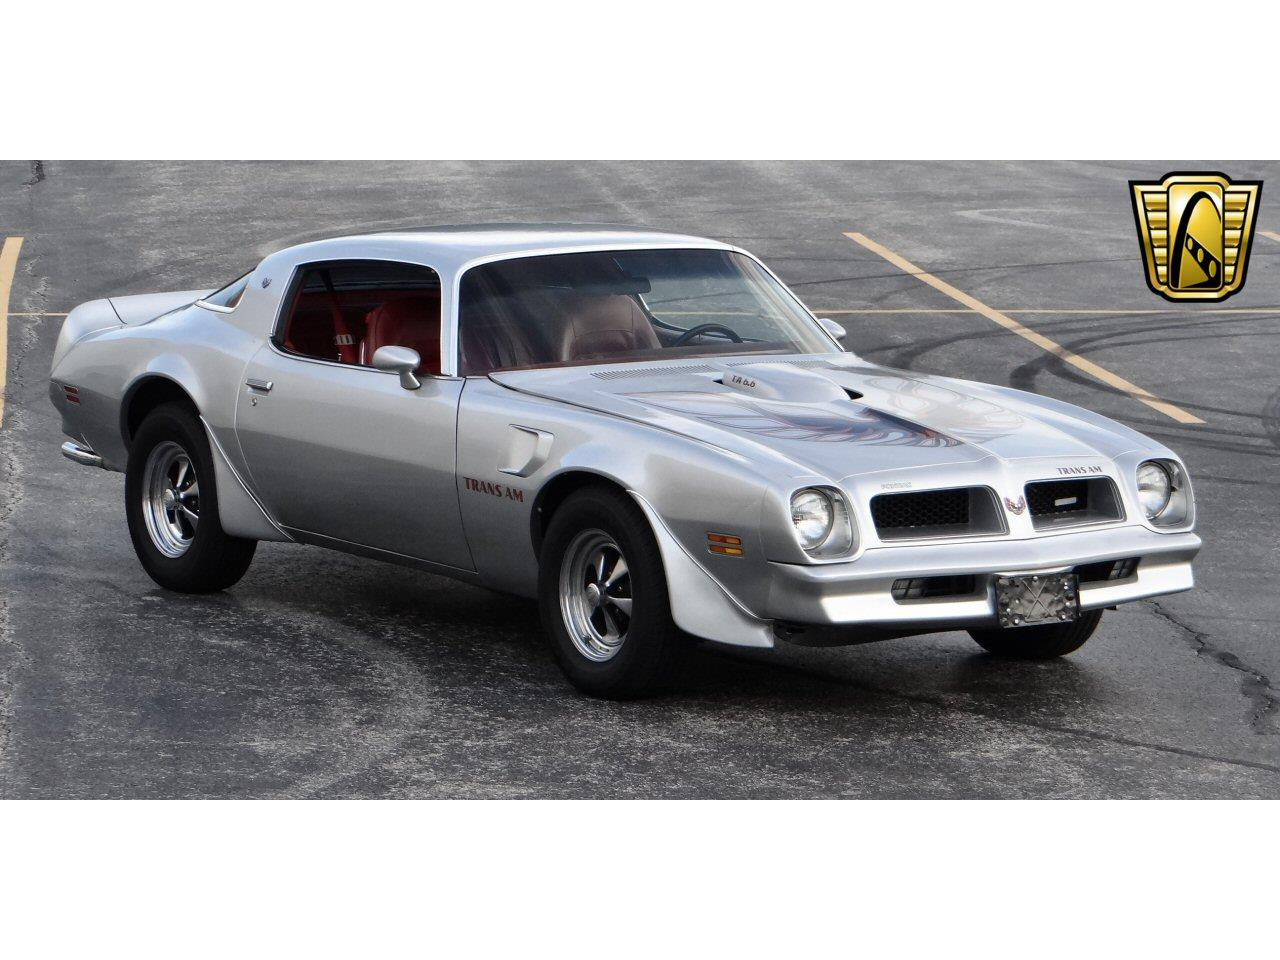 Large Picture of '76 Pontiac Firebird located in Illinois Offered by Gateway Classic Cars - Chicago - KF0S